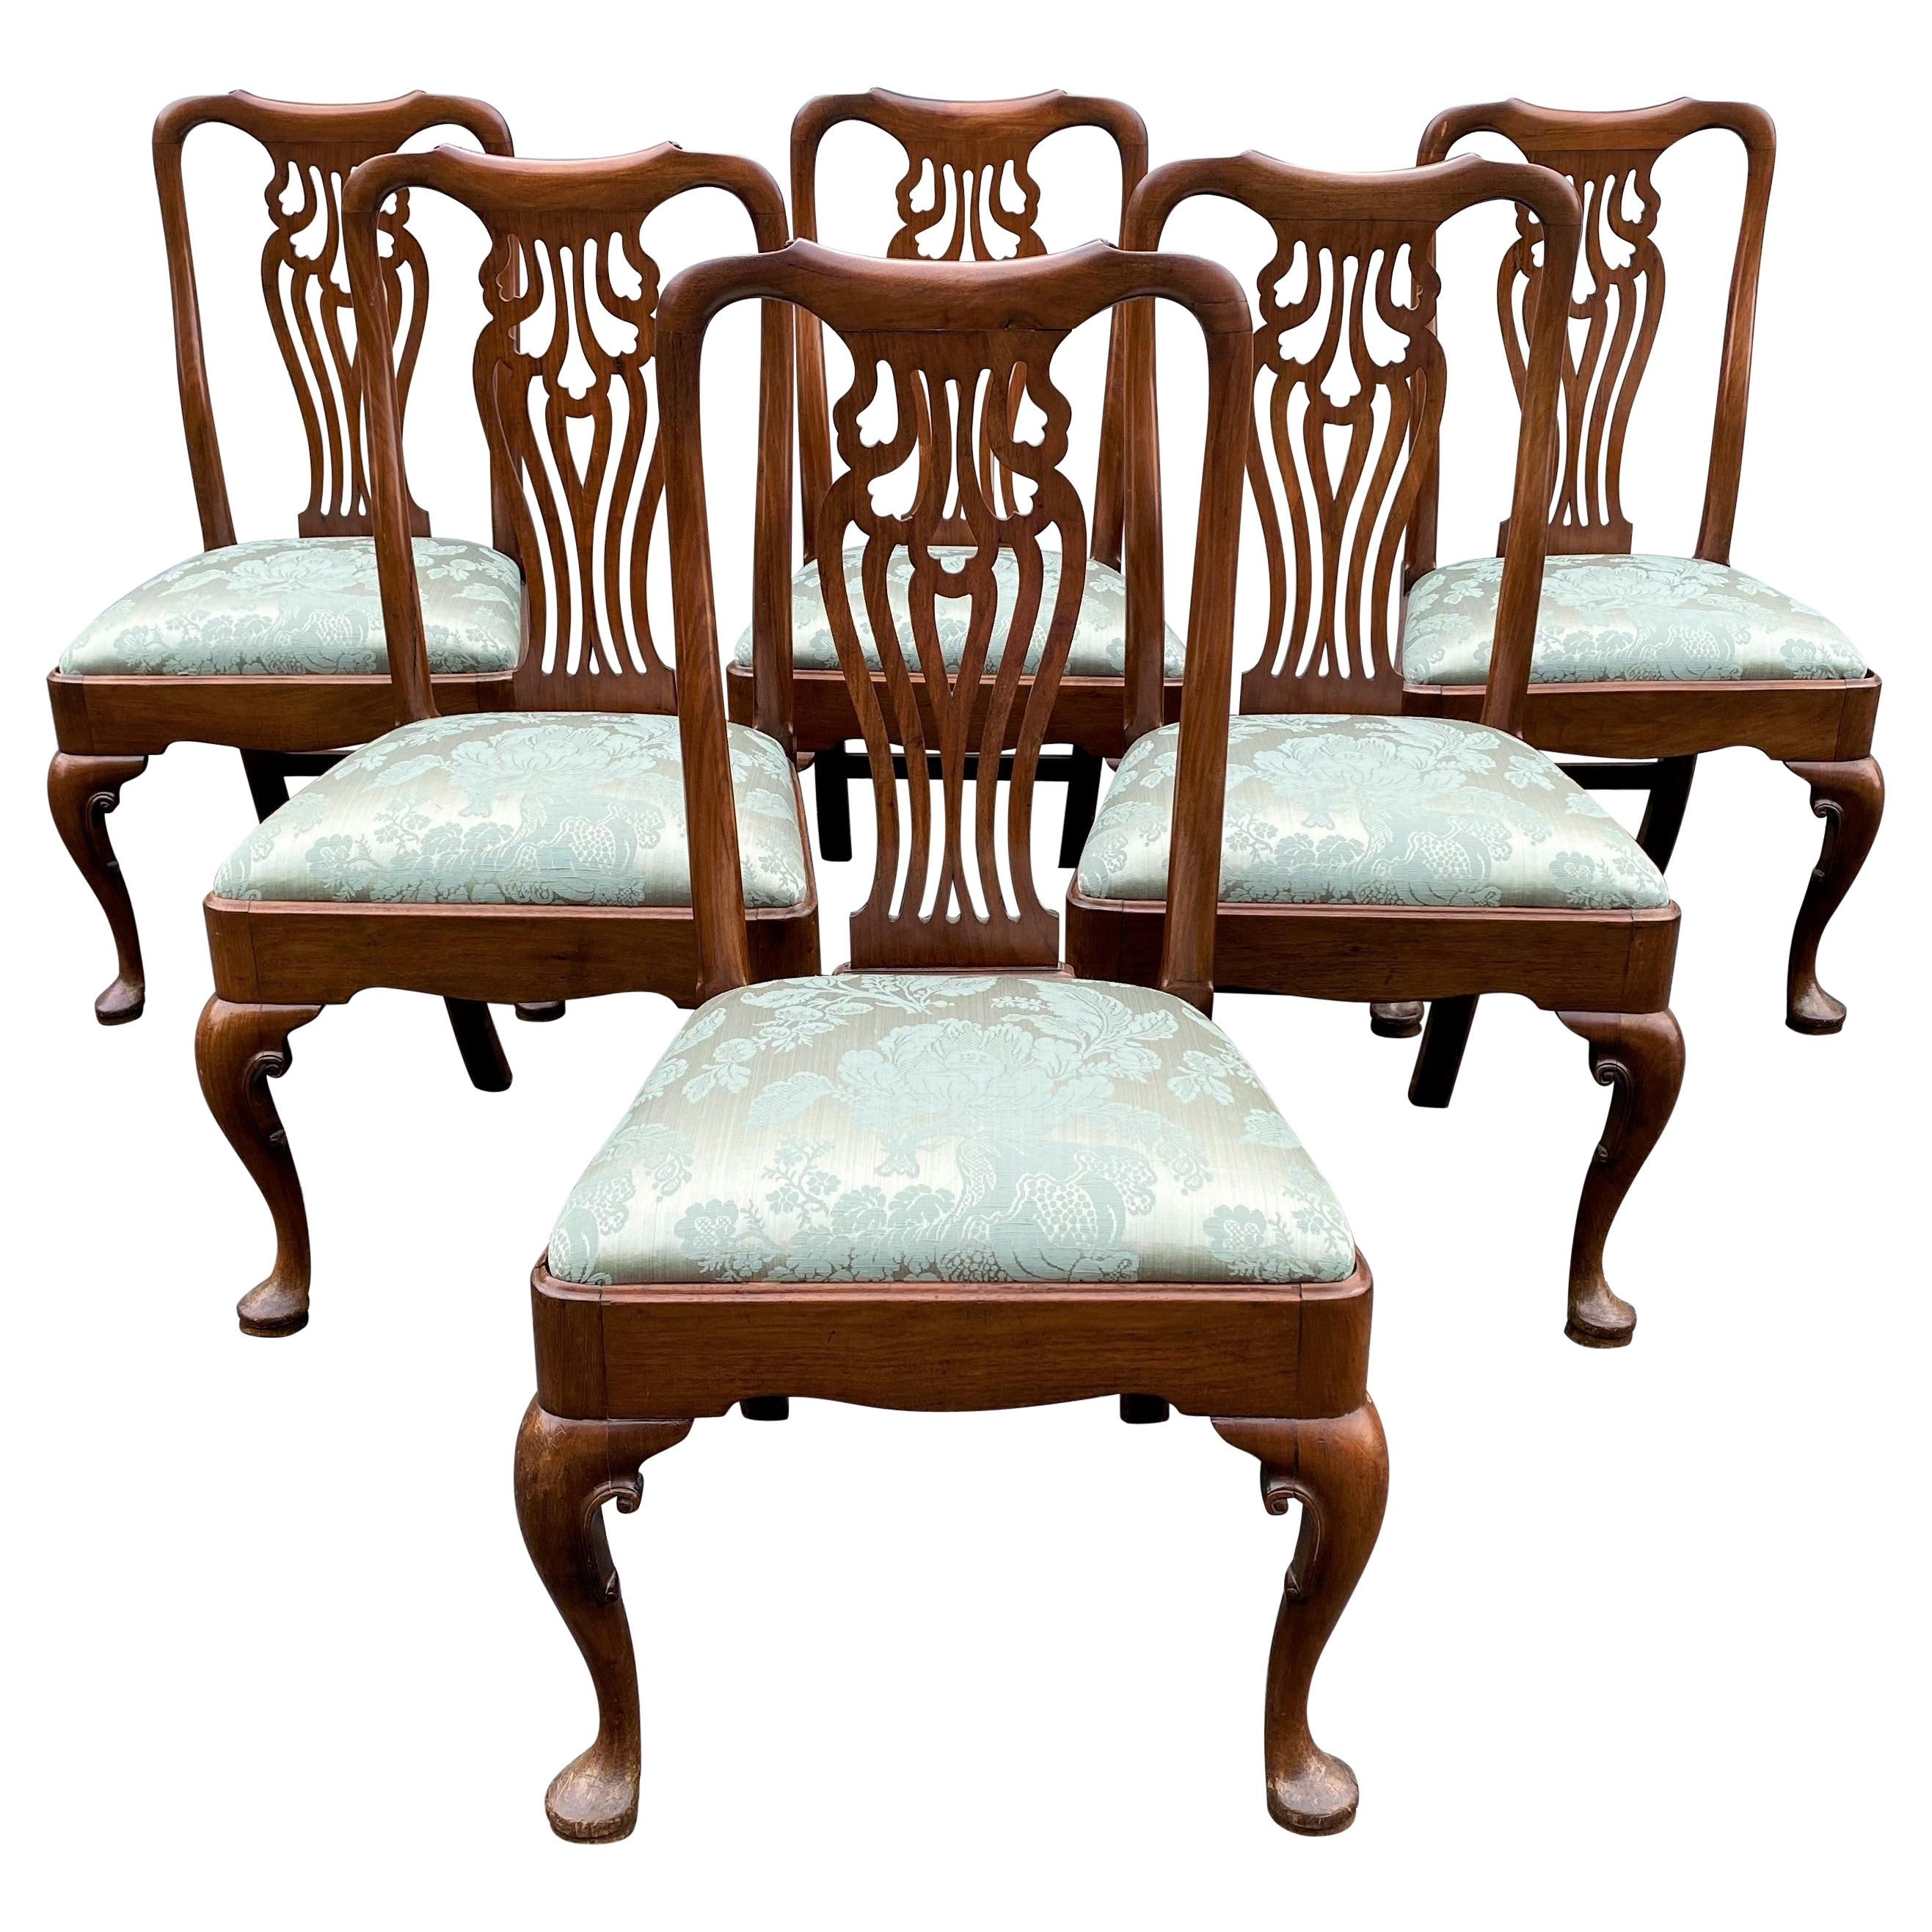 Set of Six 18th Century Queen Anne Walnut Dining or Side Chairs